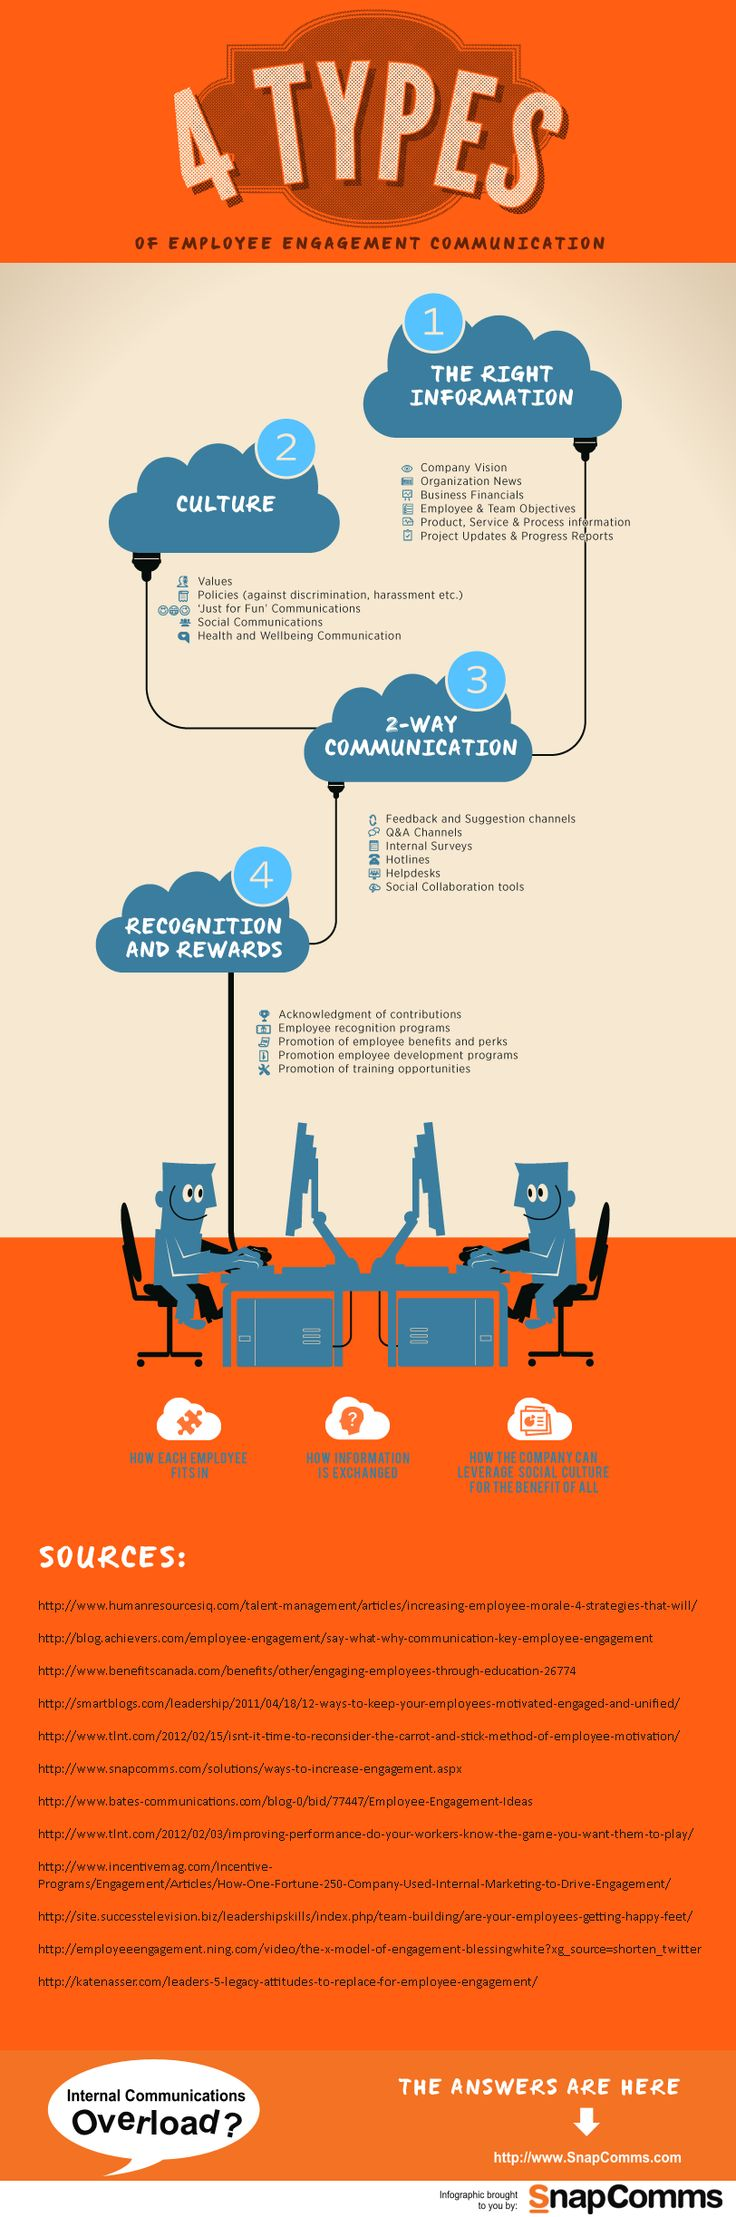 4 Types of employee engagement communication [infographic] by SnapComms